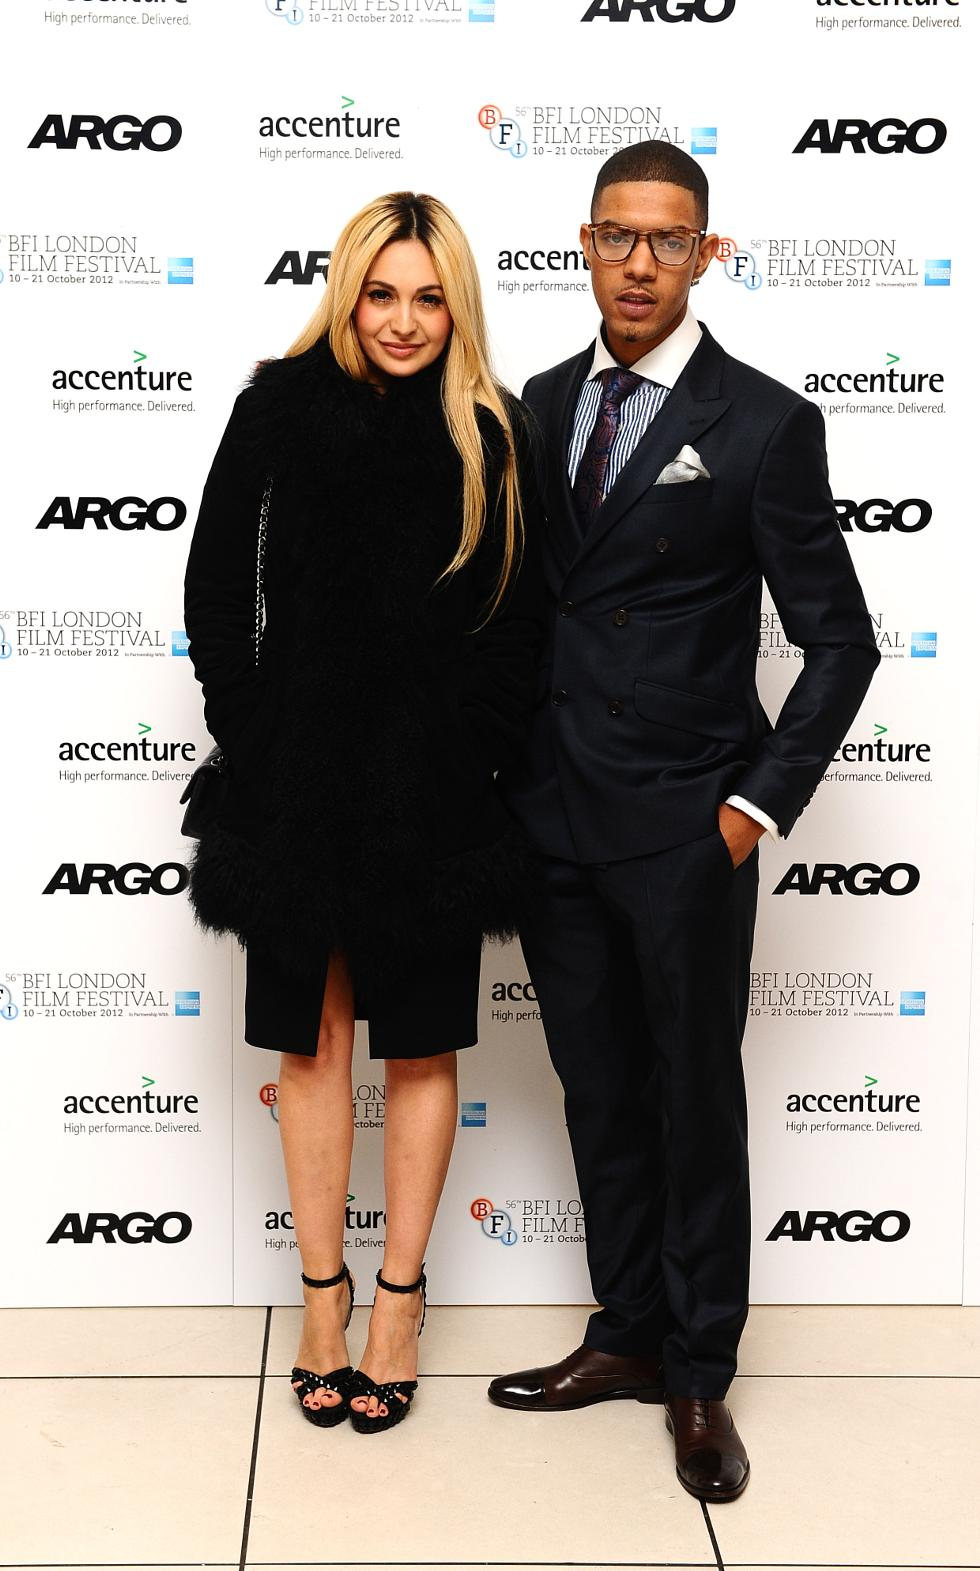 Former boyfriend and girlfriend: Richard Rawson aka Fazer and Zara Martin